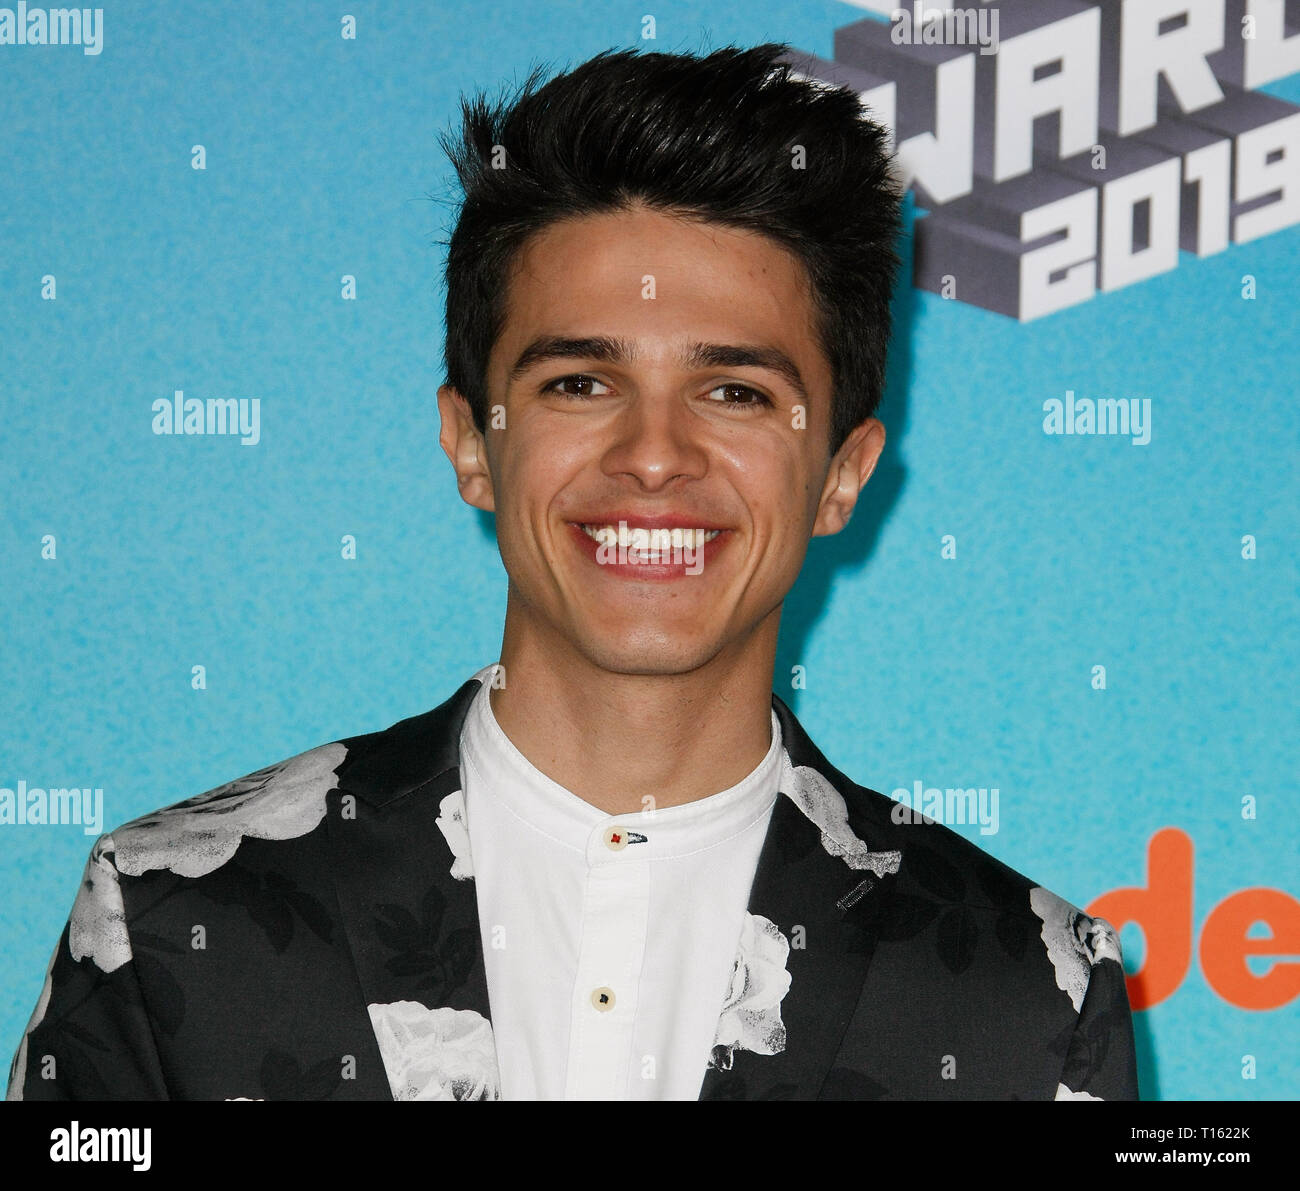 Brent Rivera Stock Photos Brent Rivera Stock Images Alamy